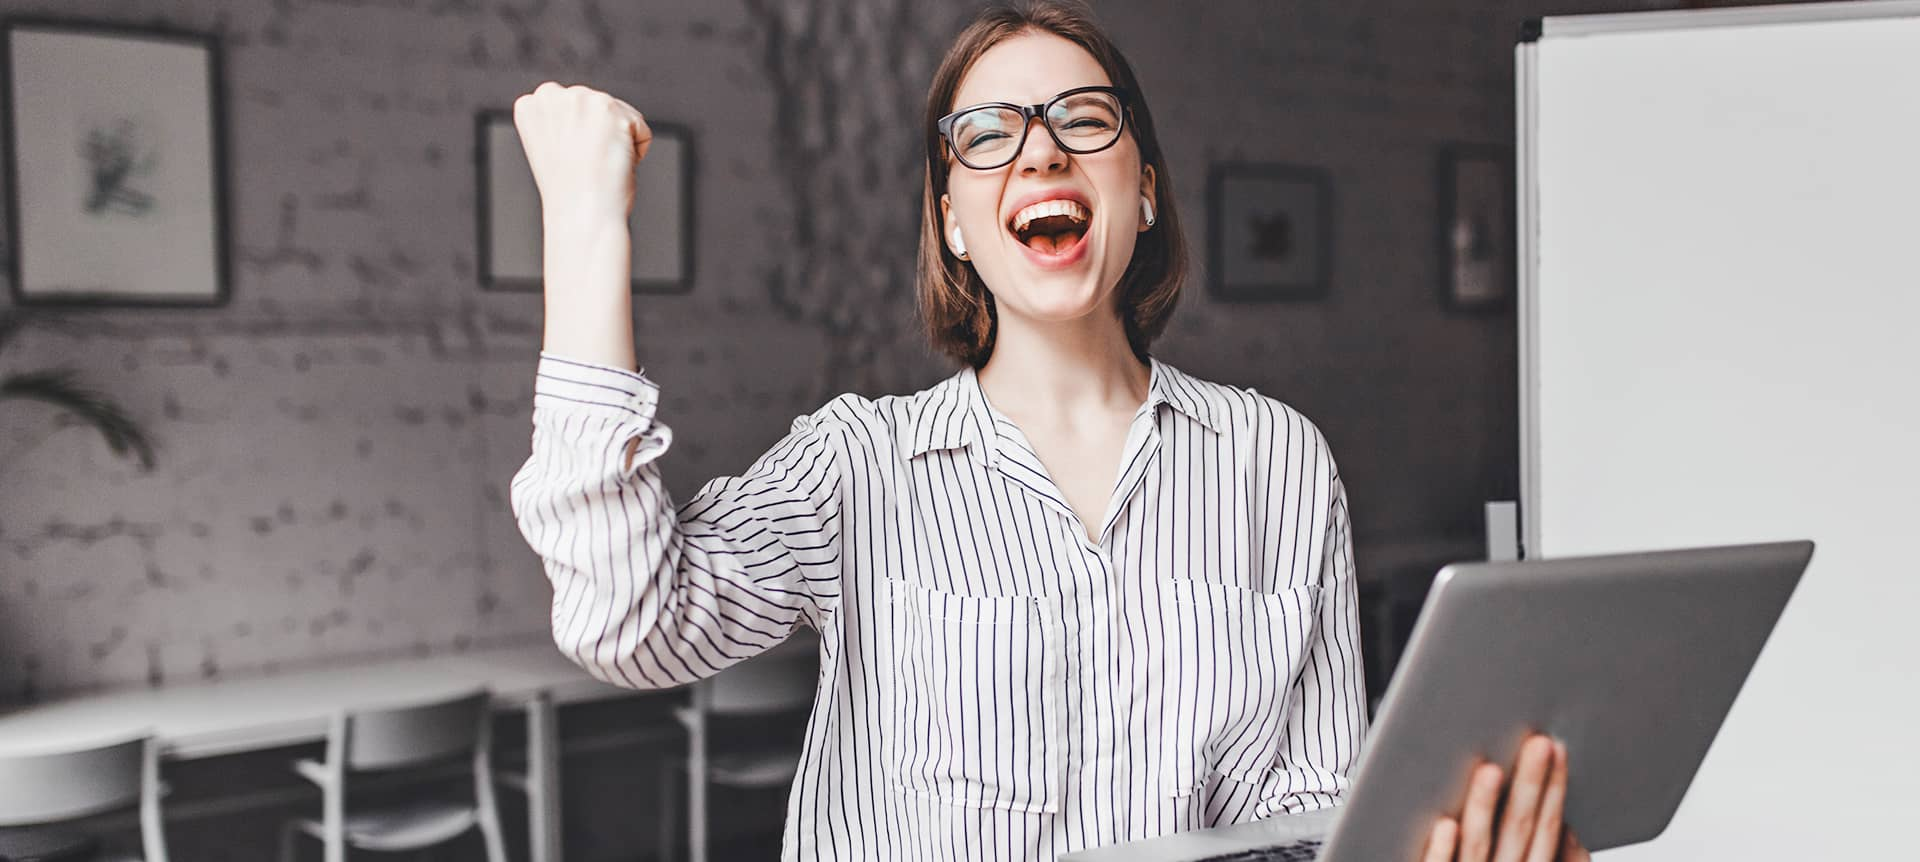 A female employee holding her laptop, looking excessively happy, and lifting her palm up in the air.